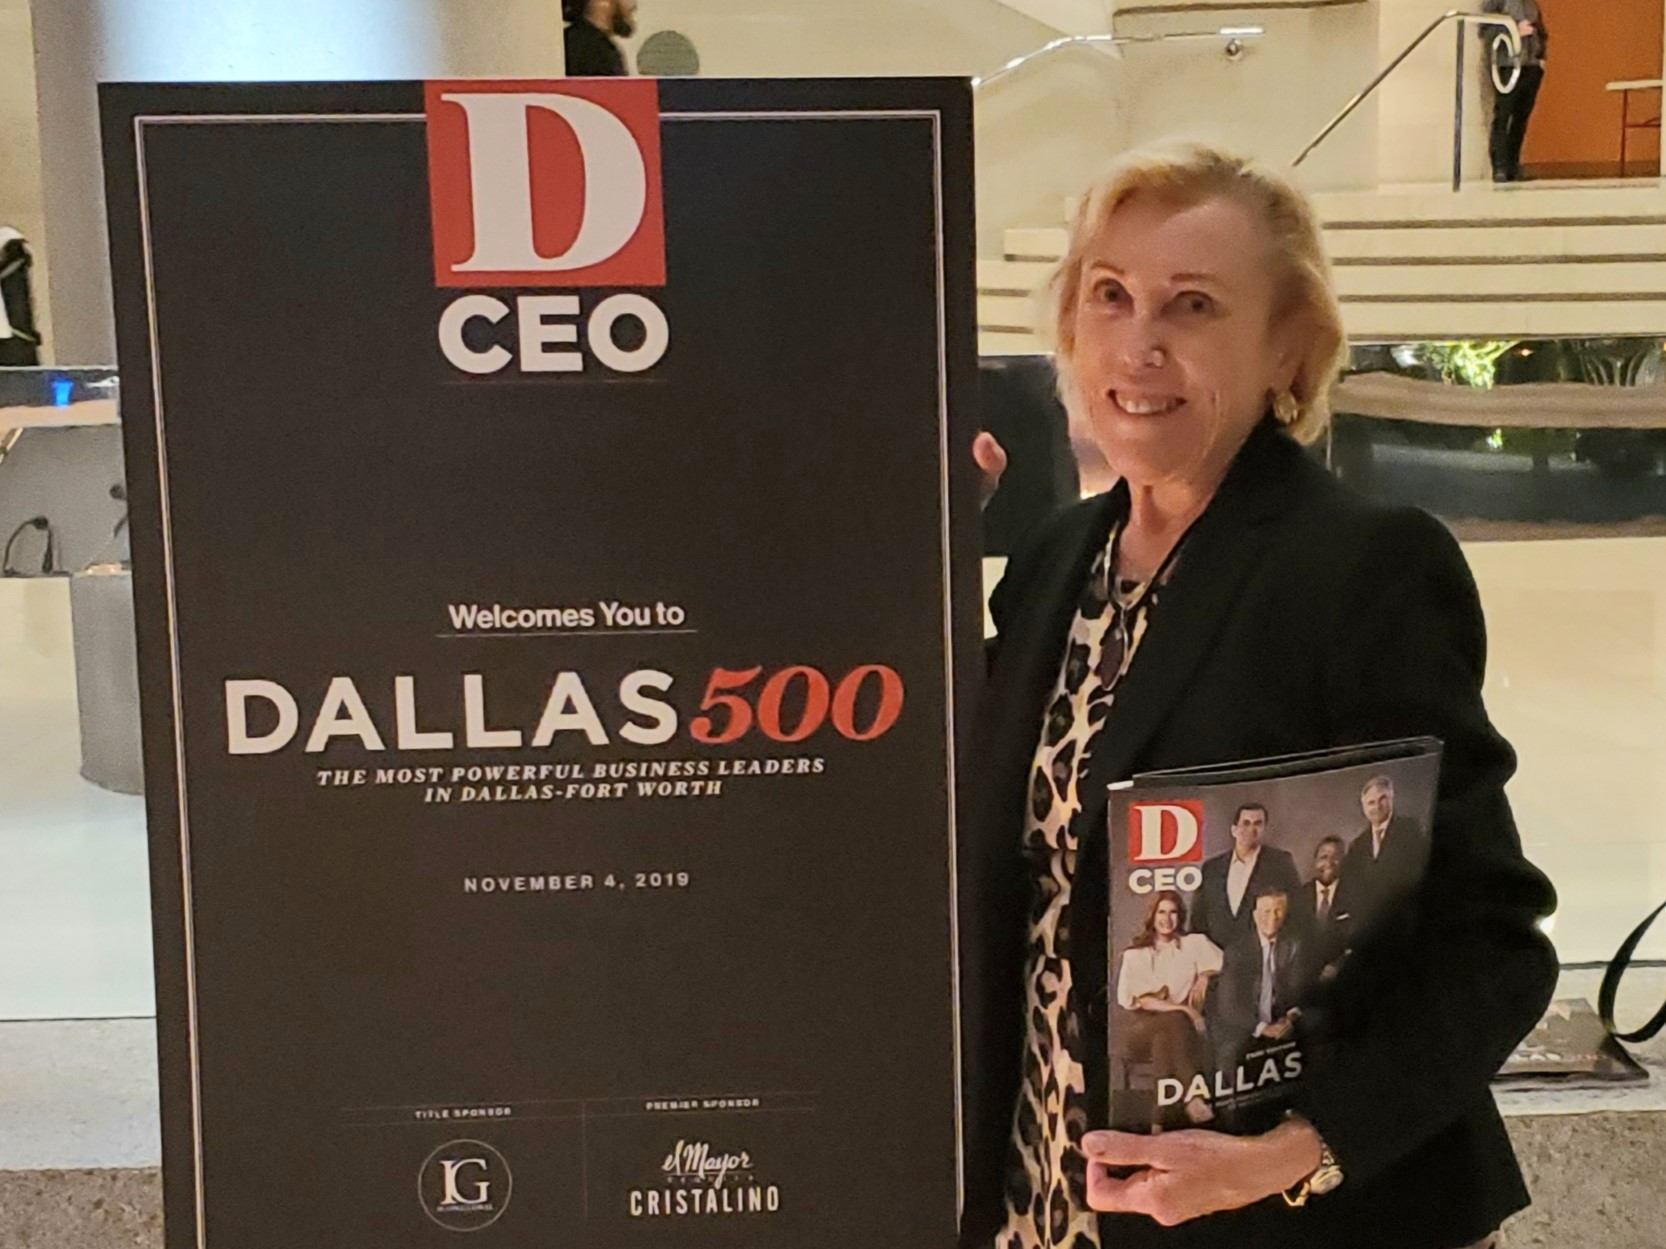 Marianne Fazen Named To Dallas 500 Most Powerful Business Leaders